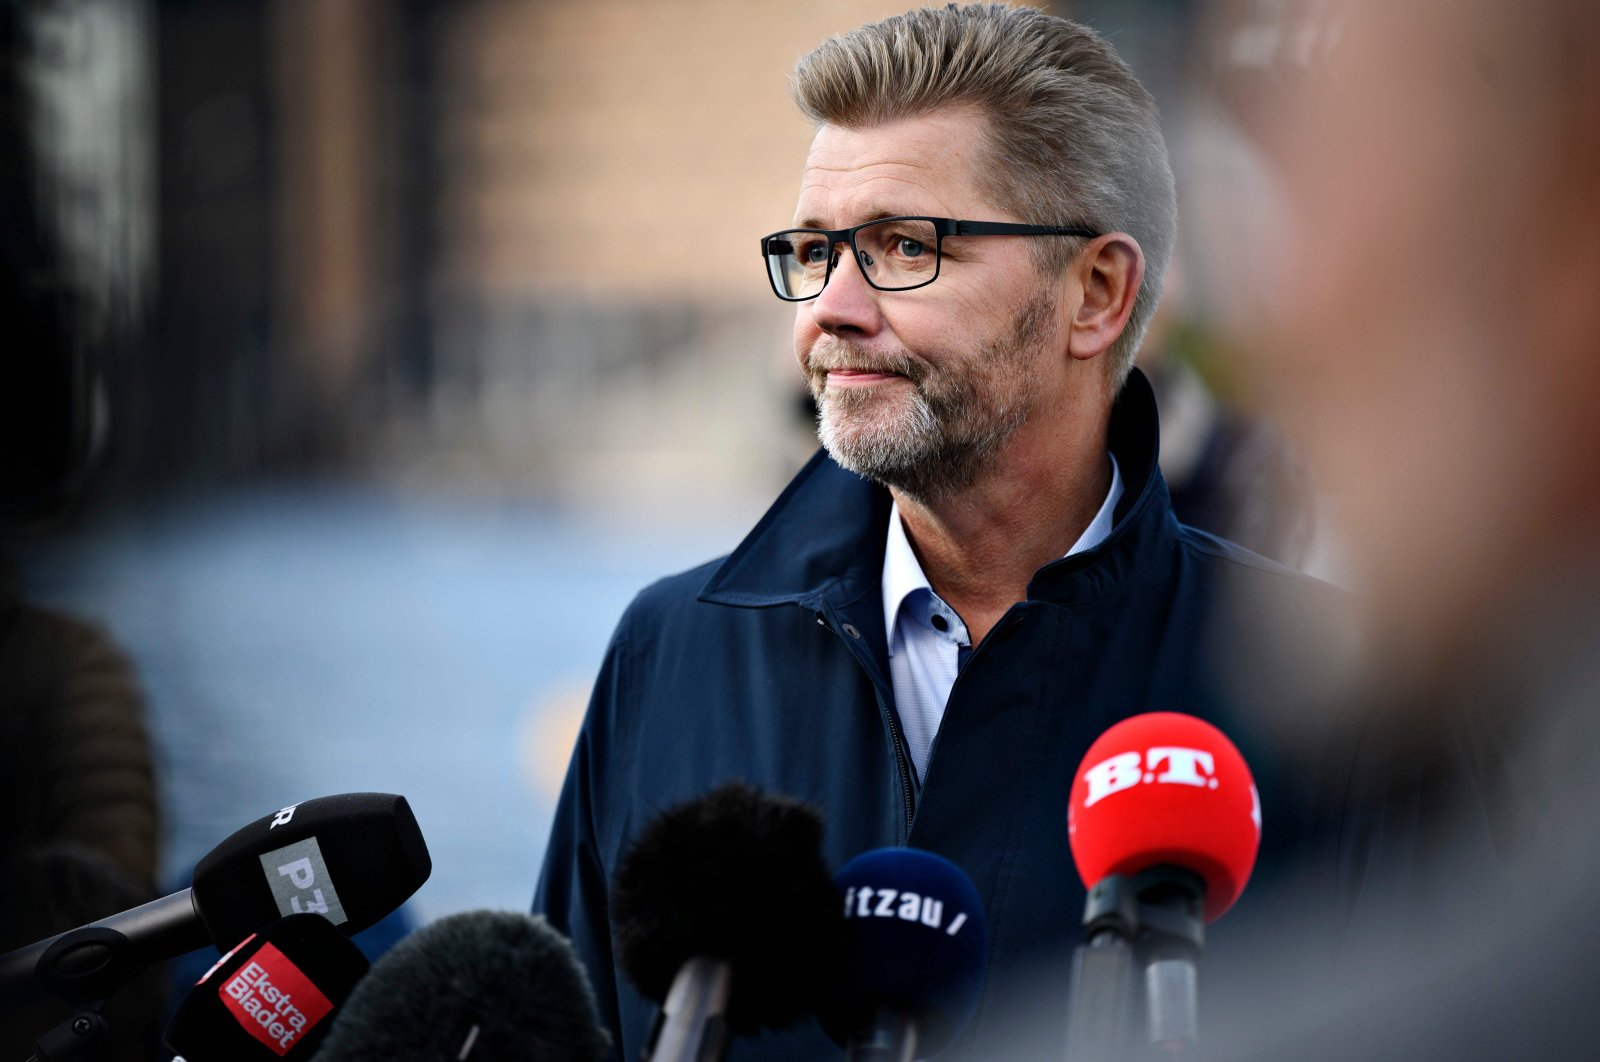 Copenhagen Mayor Frank Jensen holds a press conference at Islands Brygge, Copenhagen, Oct. 19, 2020. (AFP Photo)